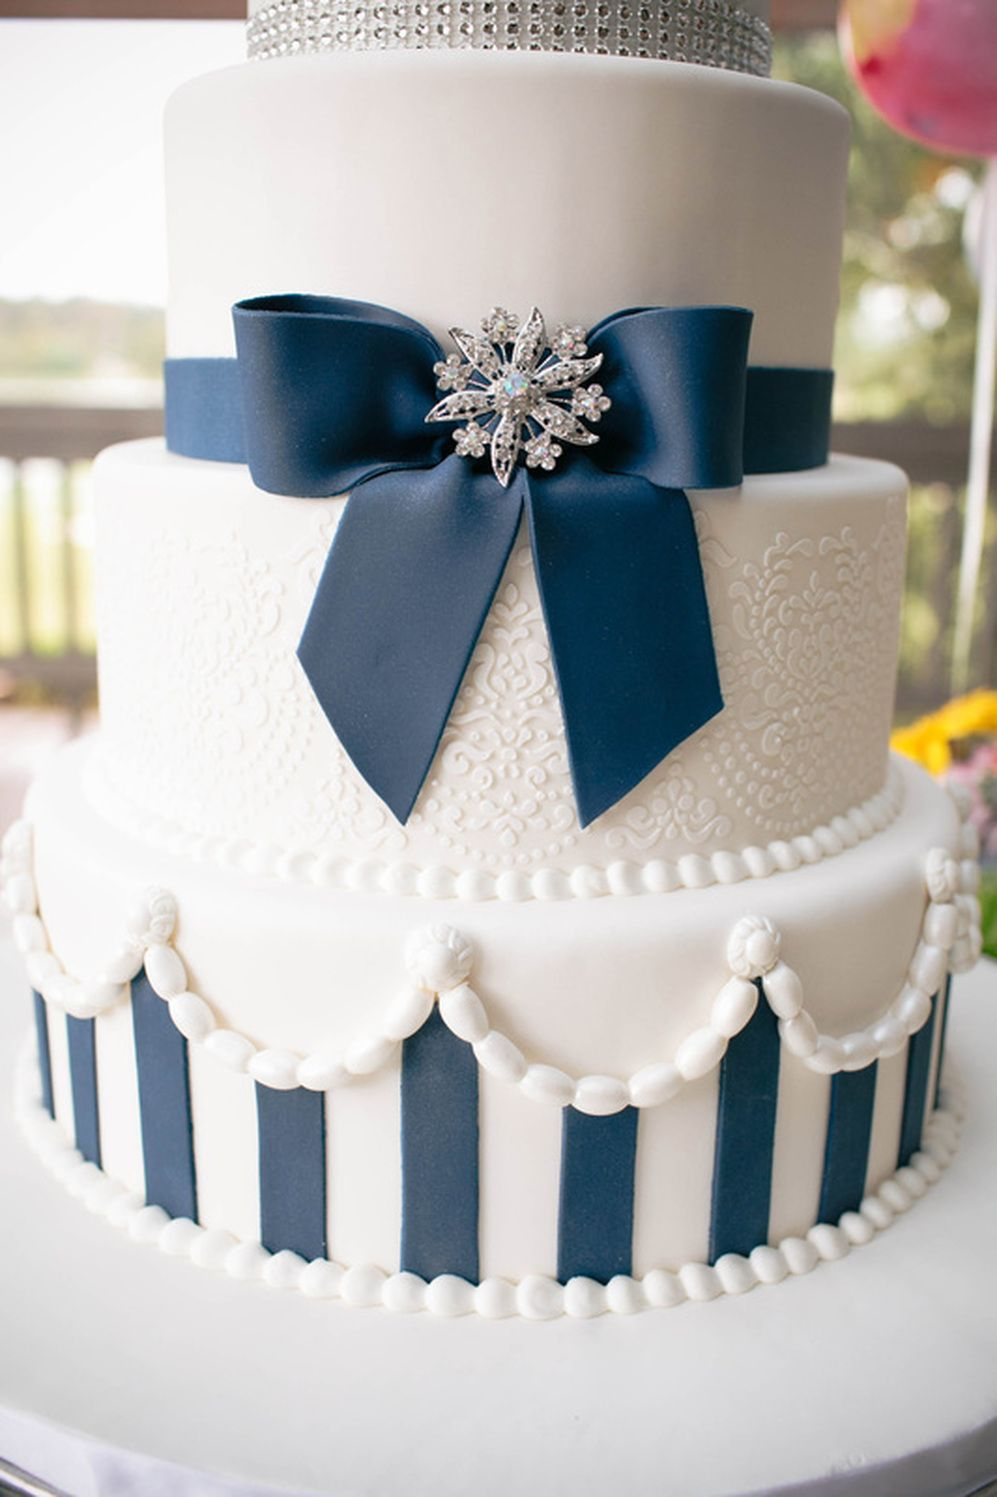 Blue and white wedding ideas navy blue striped wedding cake with